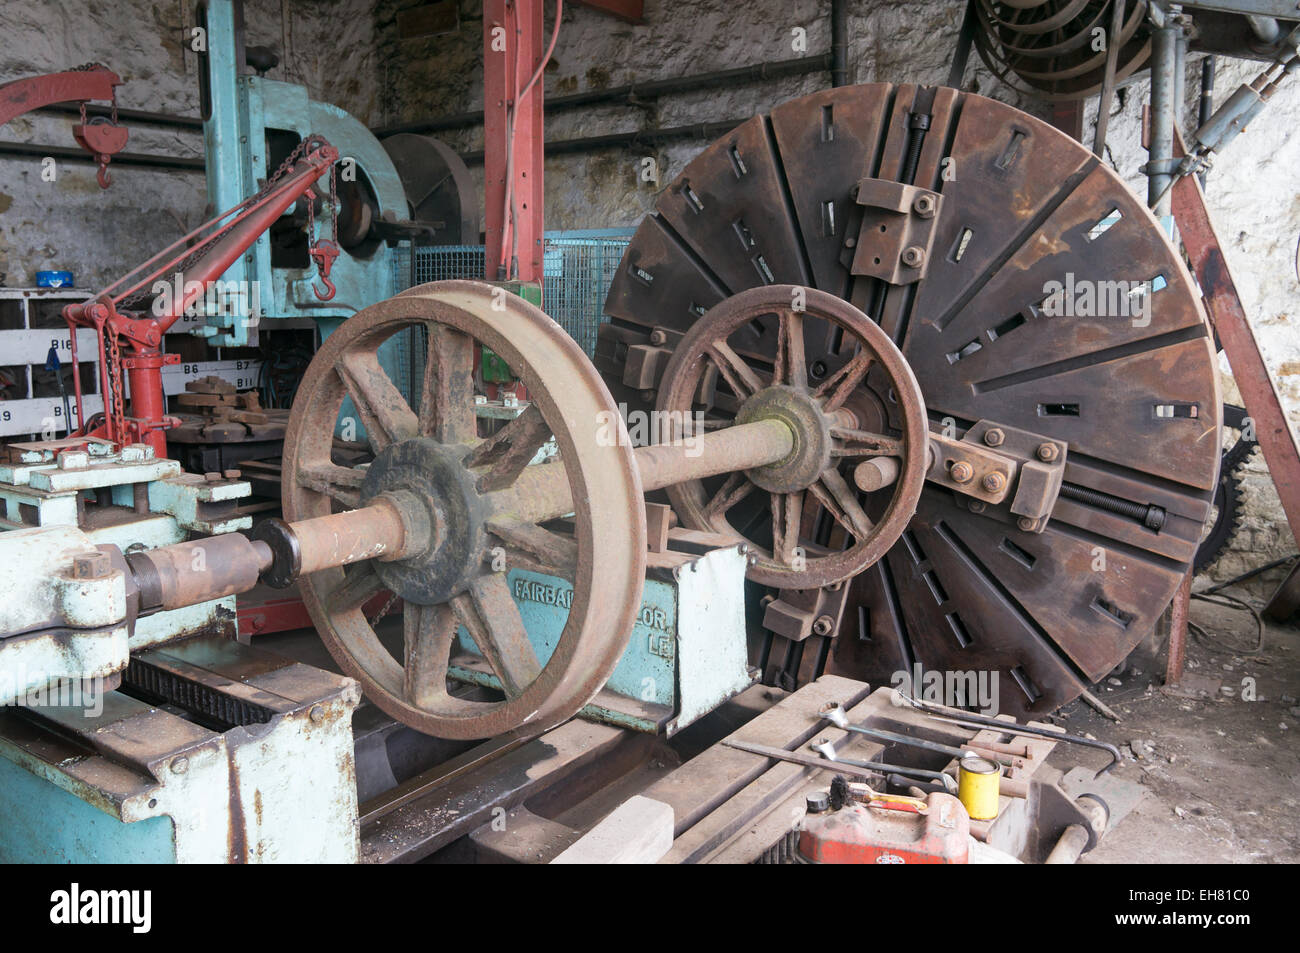 A wheel lathe loaded with a wagon axle in the Bowes Railway